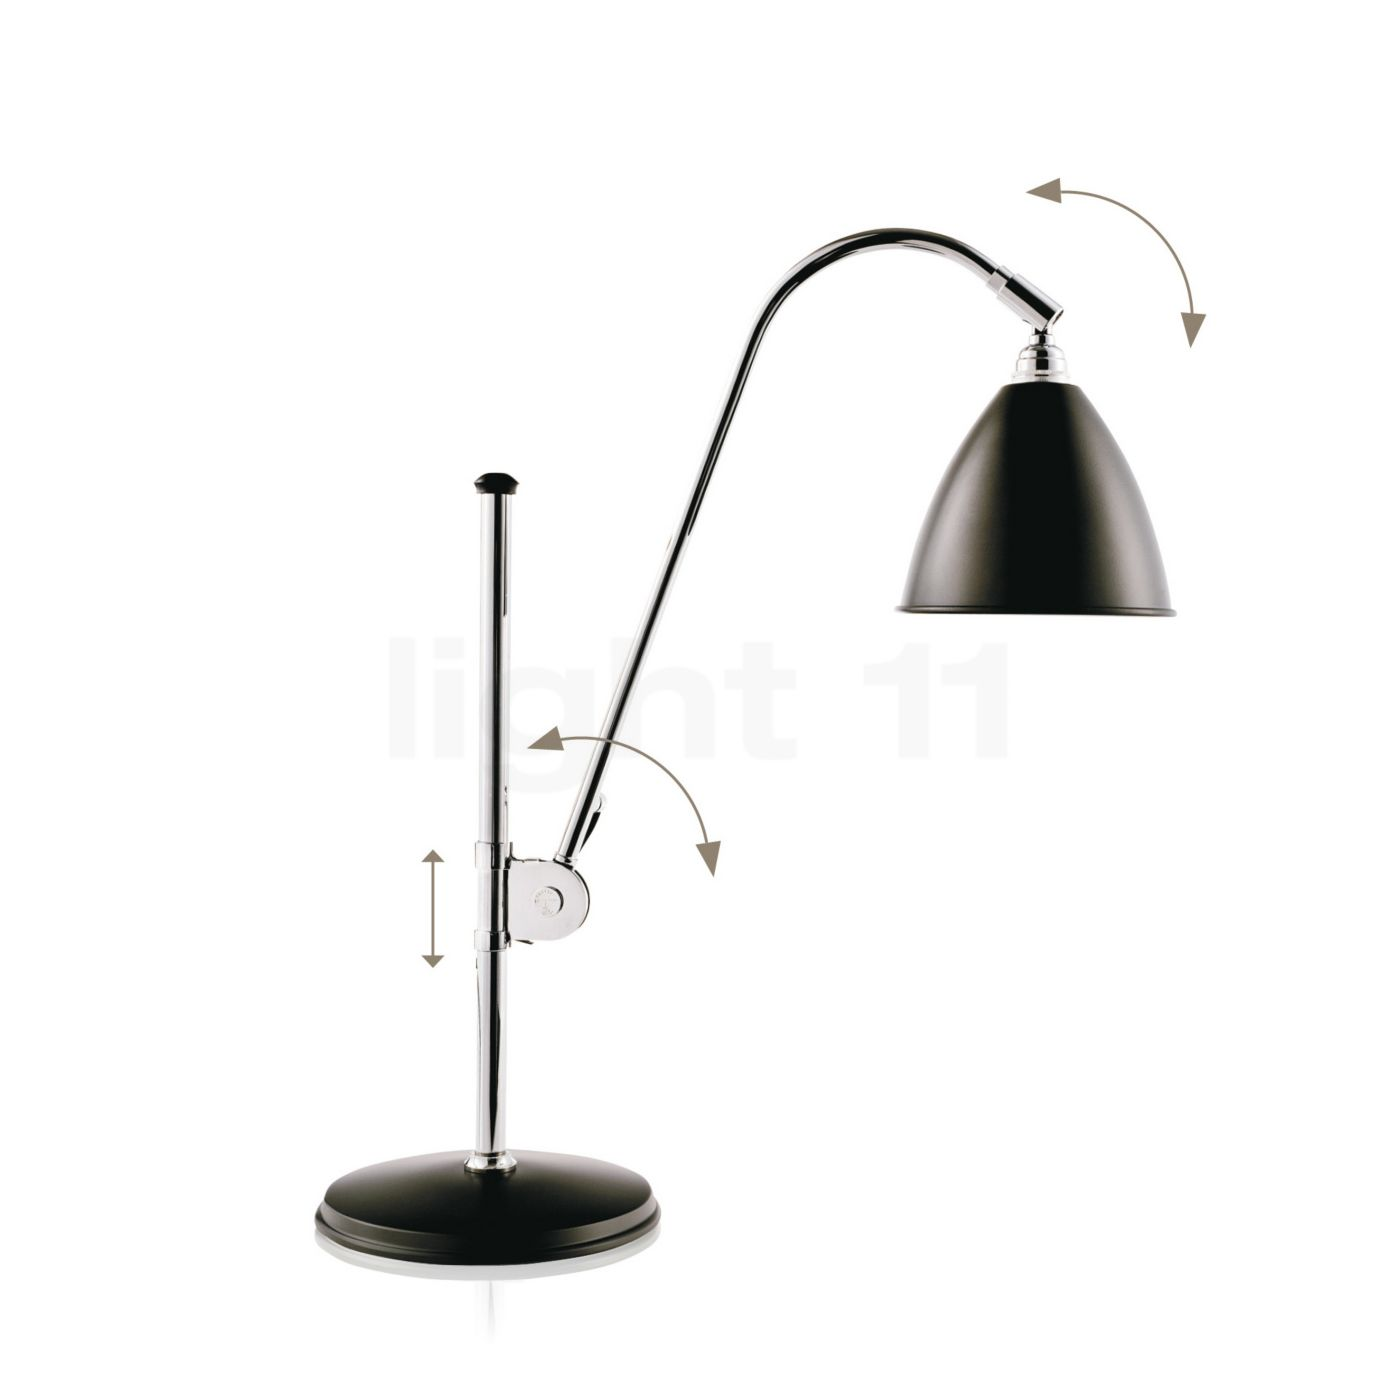 Chrome Bestlite Lampe De Bl1 Table Bureau 2YE9bWDeHI